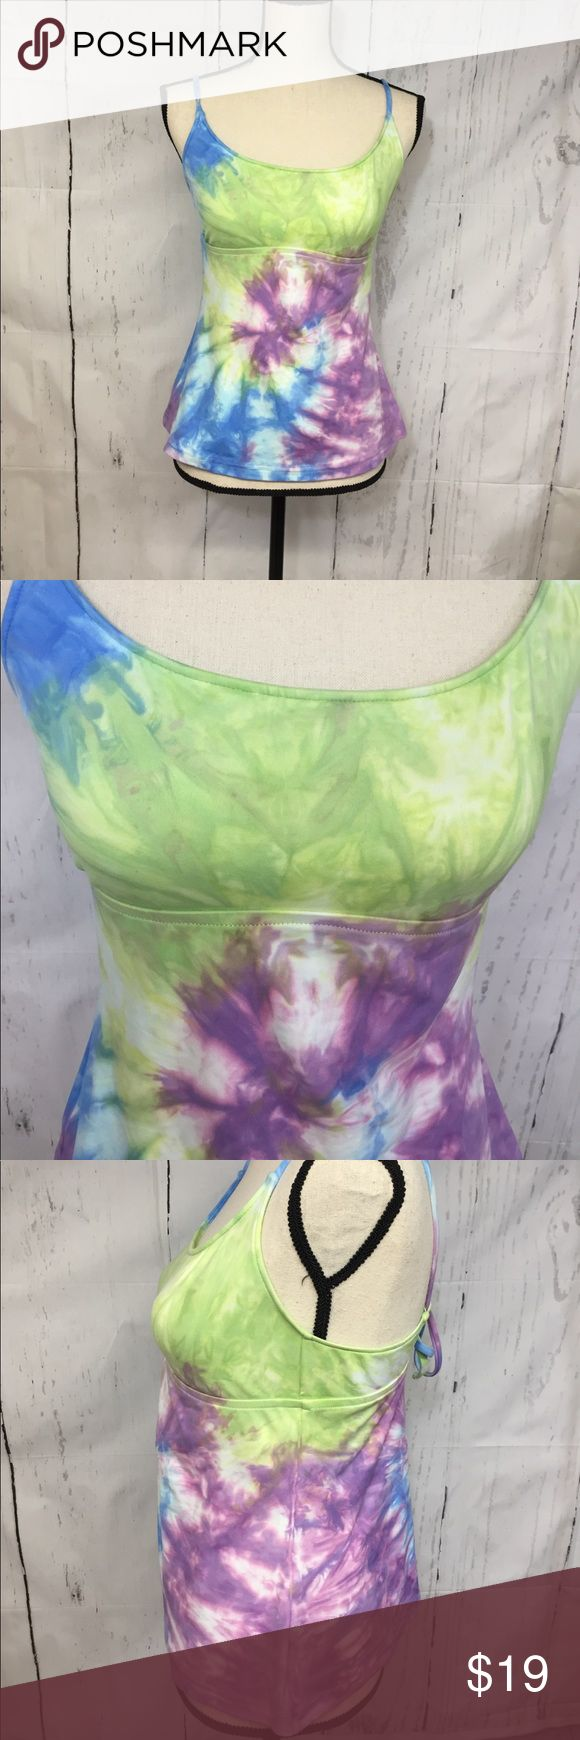 ( Lucky Brand) woman's Tankini Bathing Suit Size M , pre-owned Lucky Brand Swim